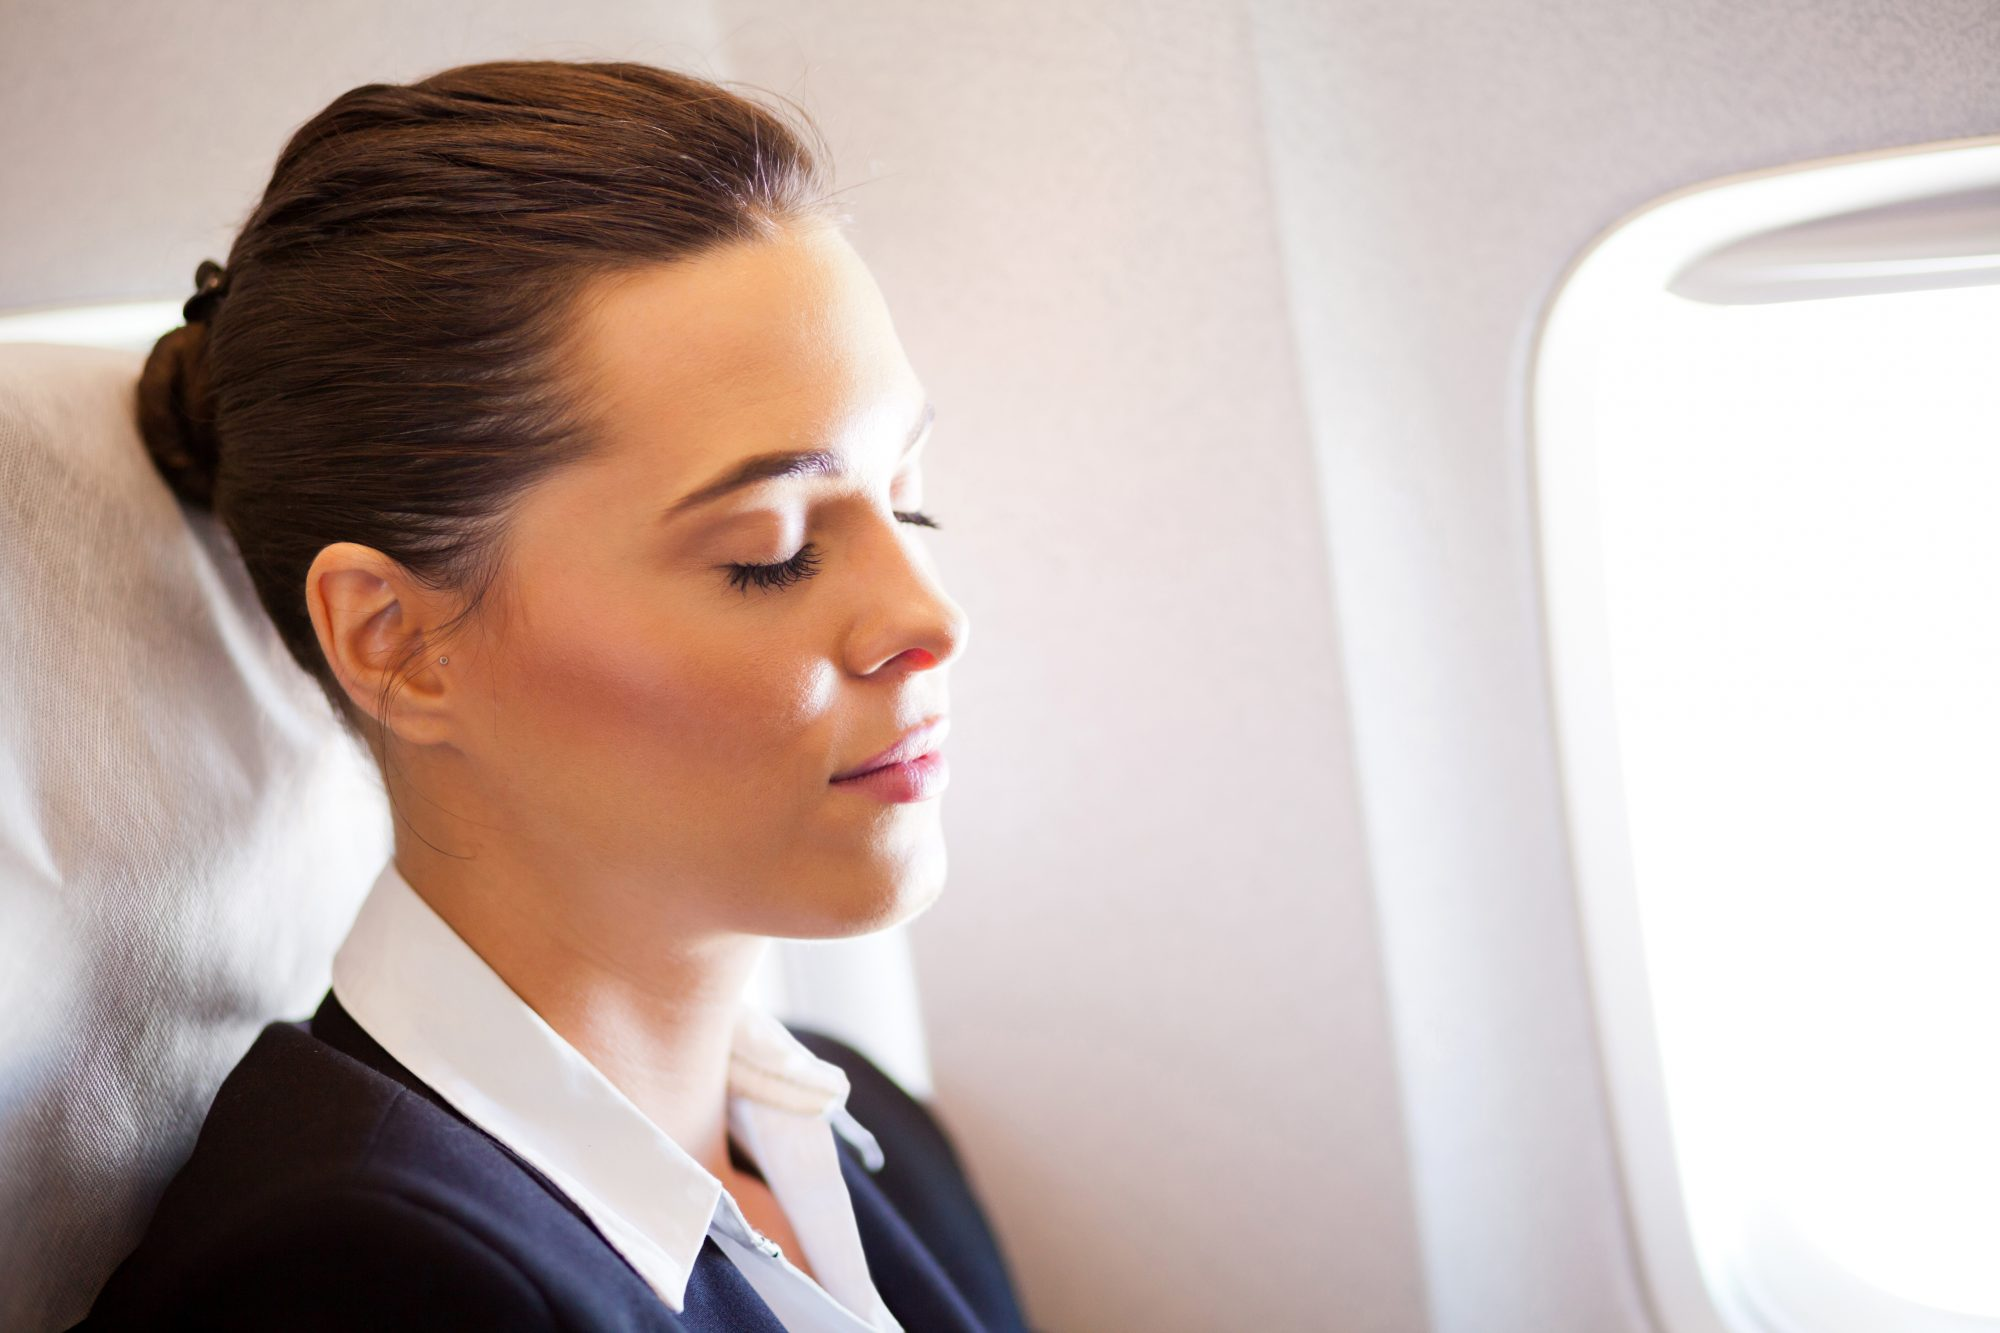 young businesswoman resting on airplane